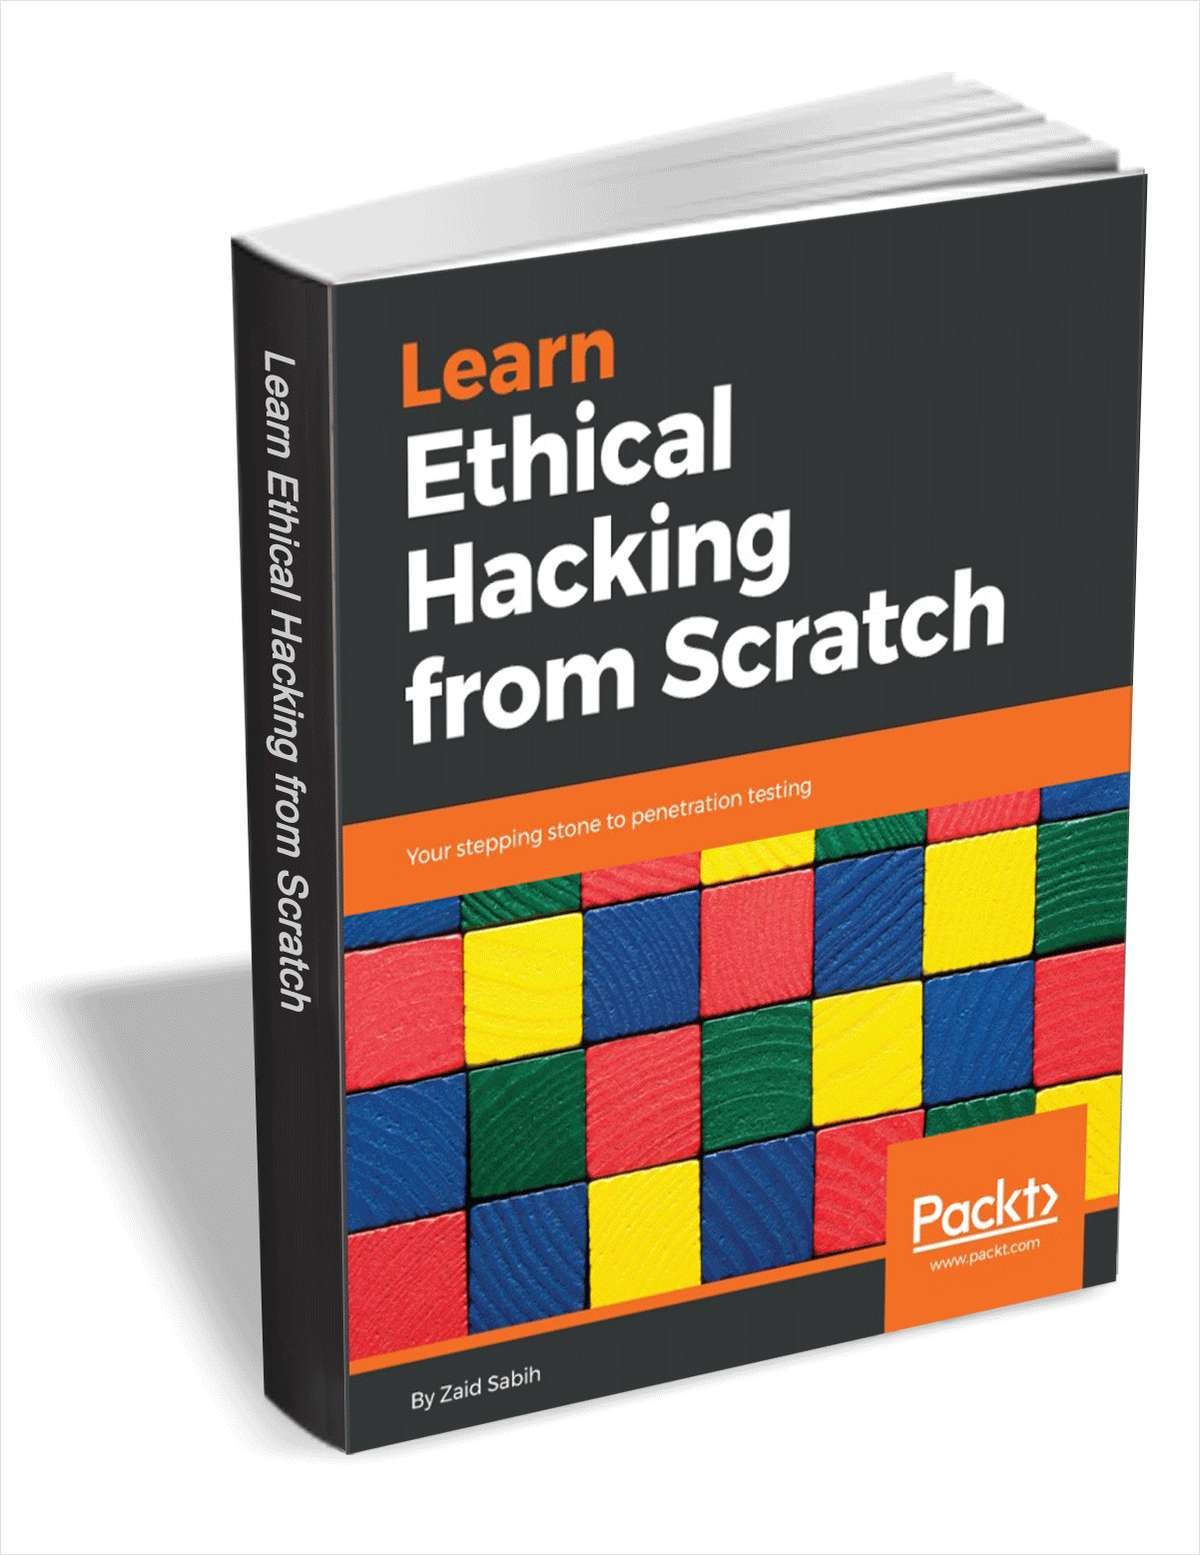 Learn Ethical Hacking from Scratch ($23 Value) FREE For a Limited Time